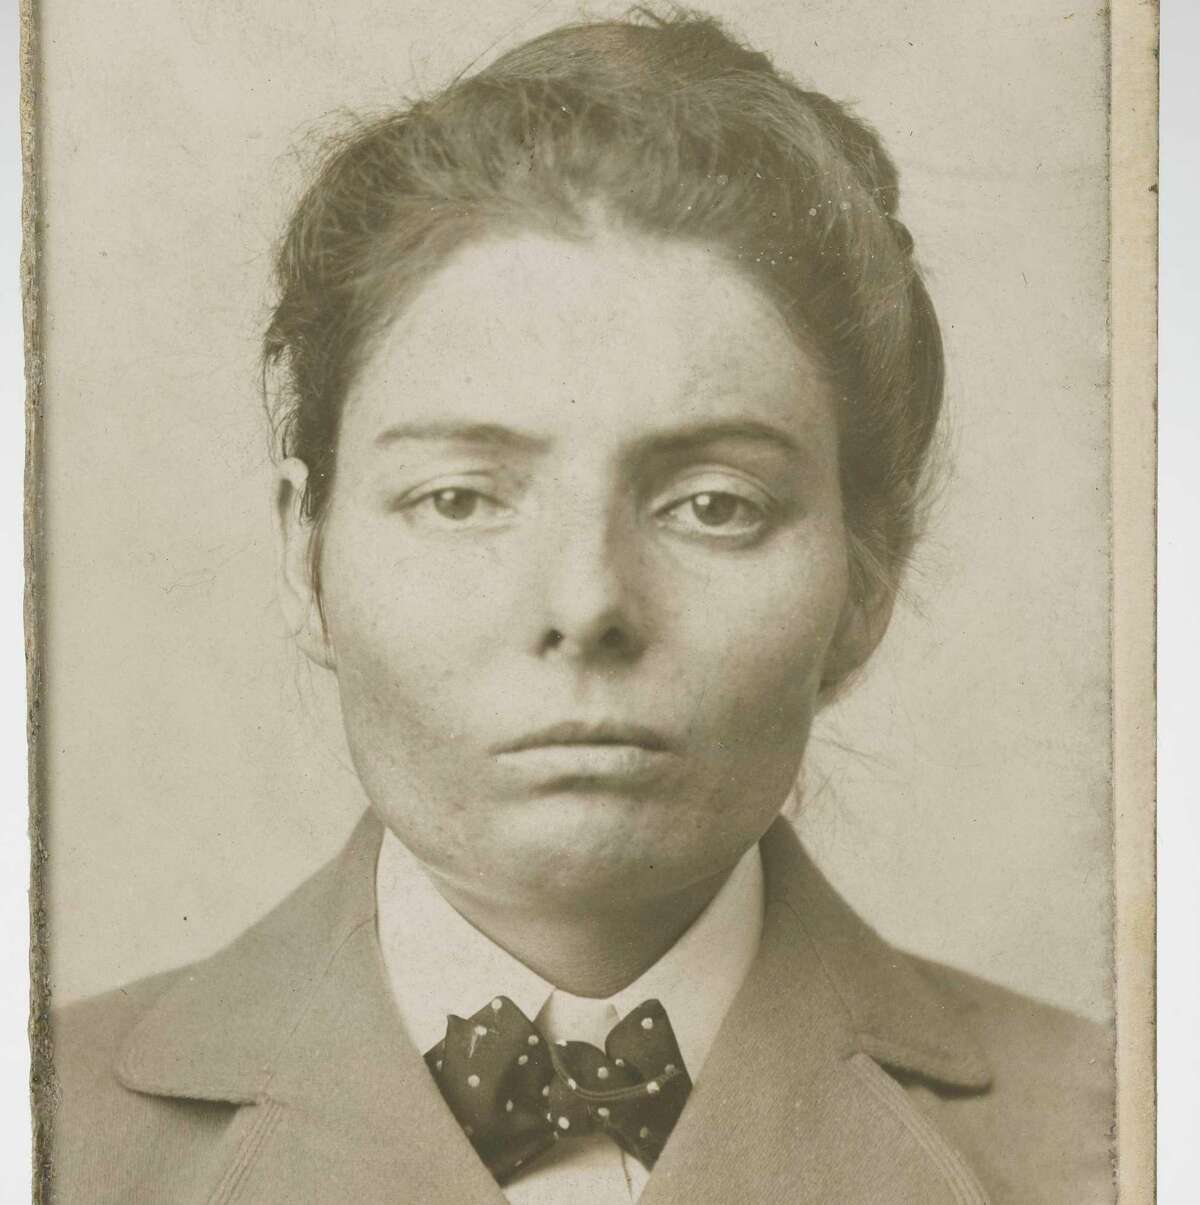 Laura Bullion, who could pass for a boy during train robberies, lived a life of crime for about a decade. She spent nearly four years in prison.